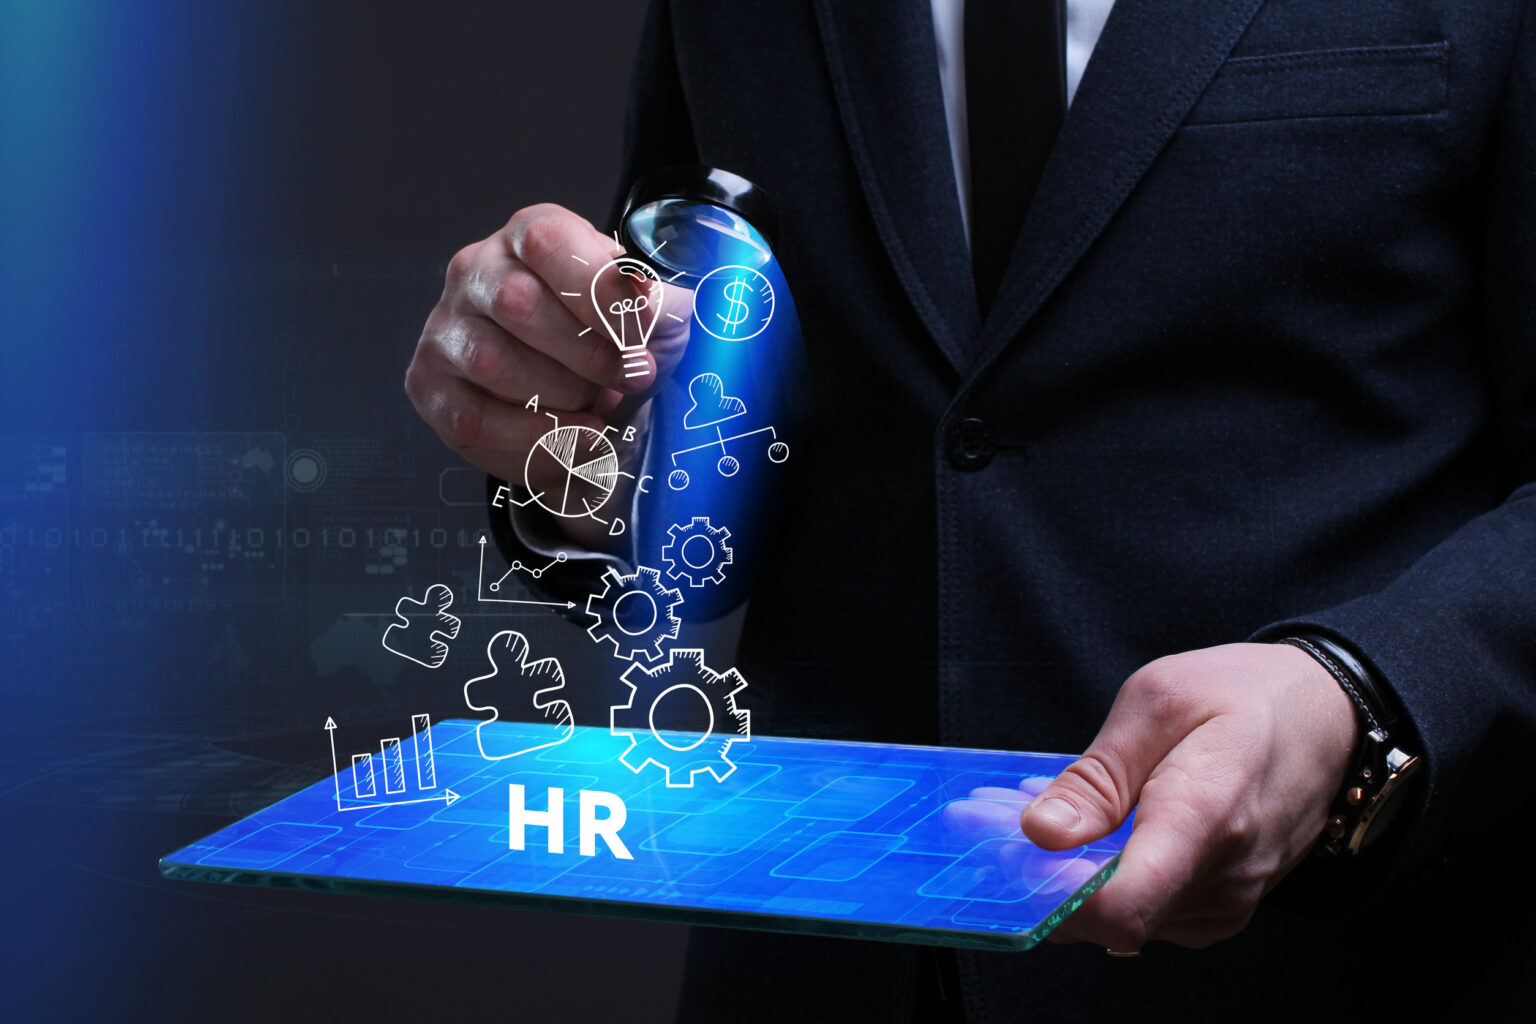 Transforming and shaping the future of HR technology